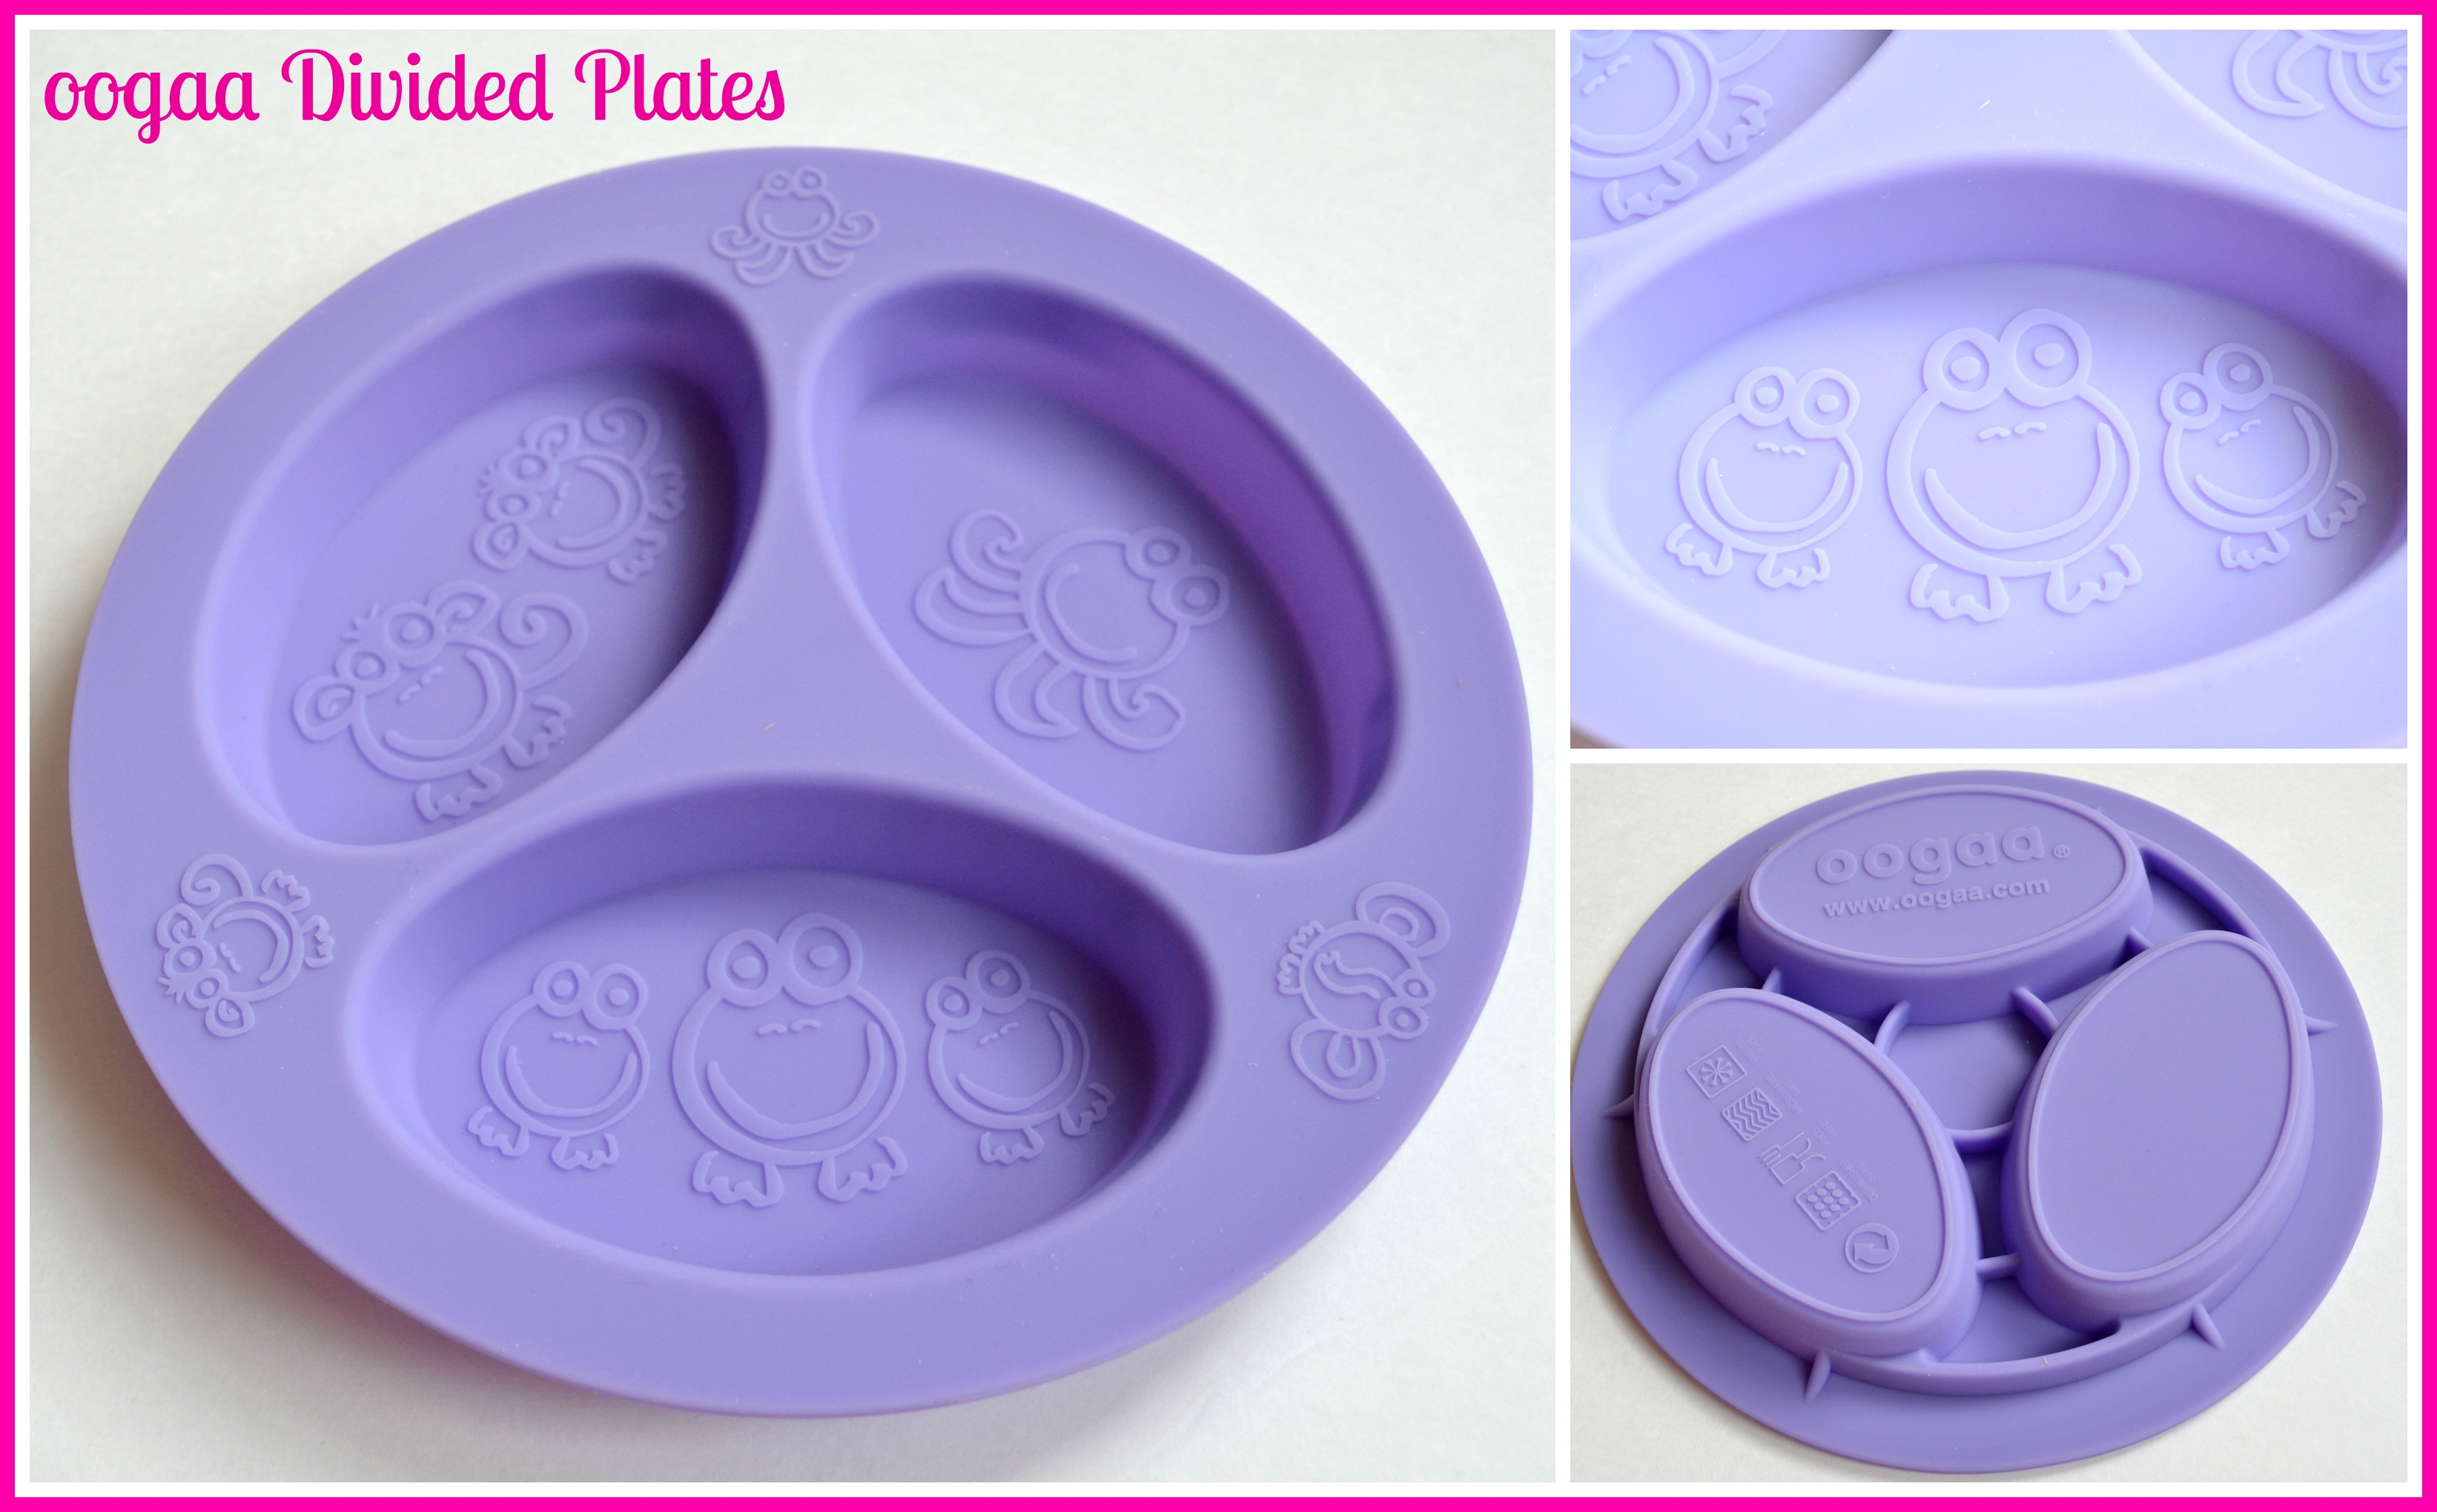 ooga: Baby Silicone Feeding Products Review (Getting Ready For Baby Gift Guide)